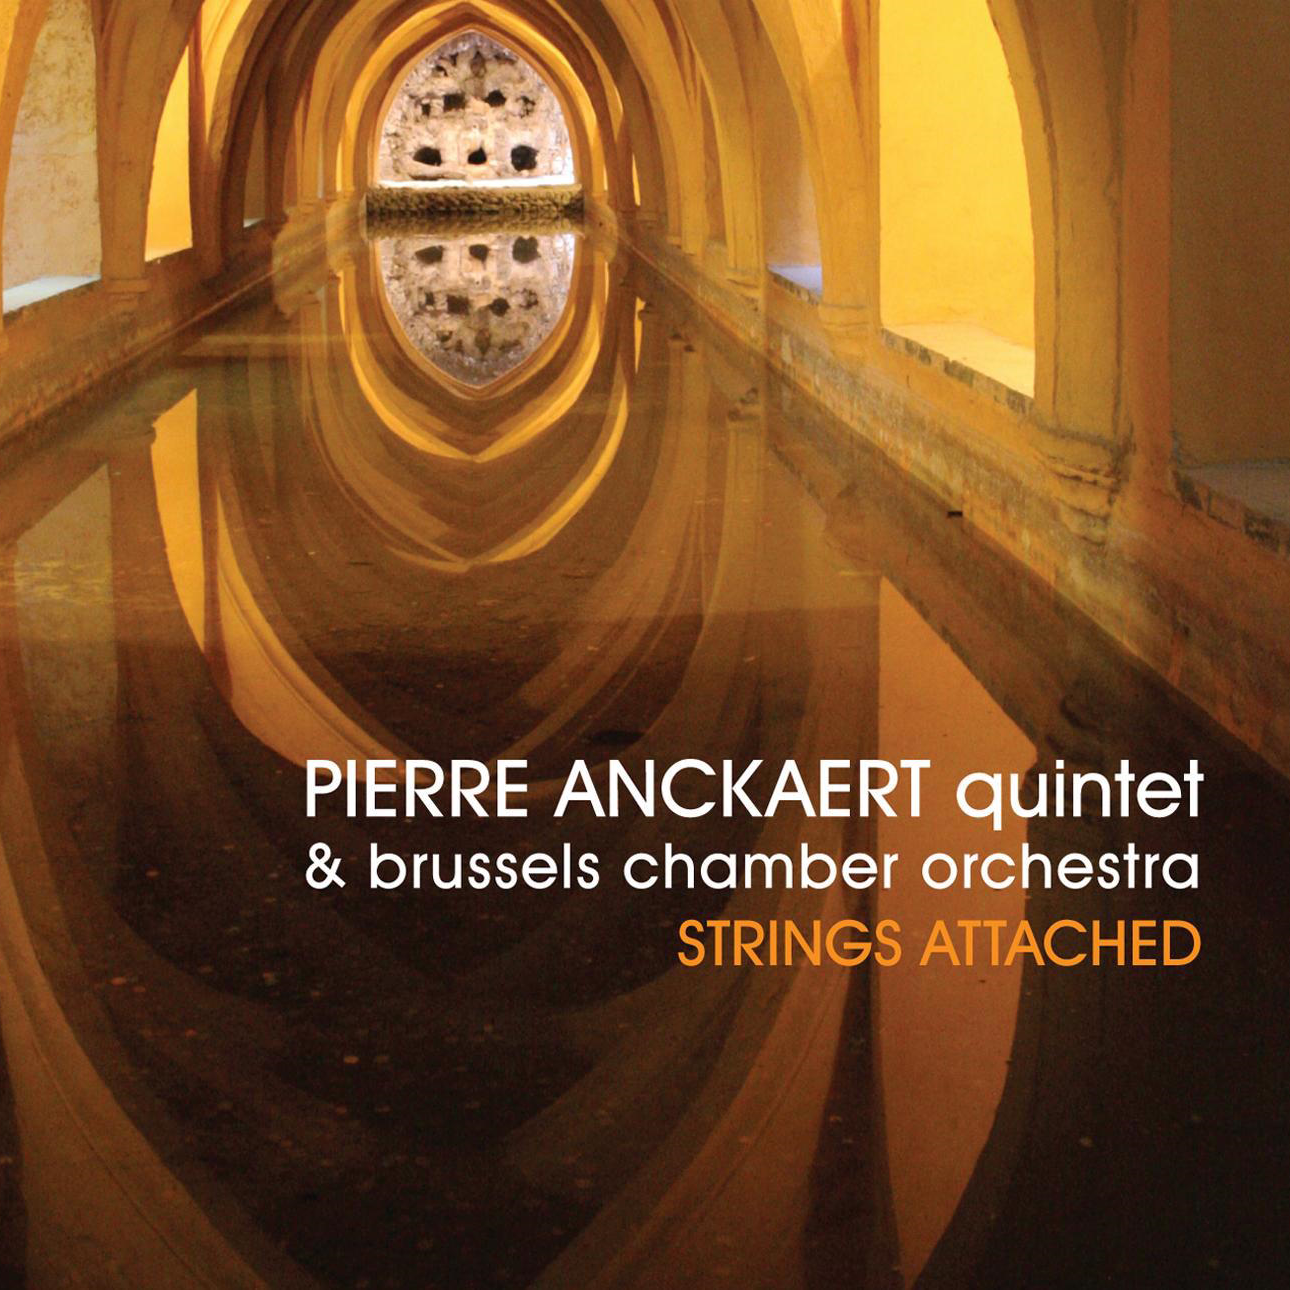 Pierre Anckaert - Strings Attached